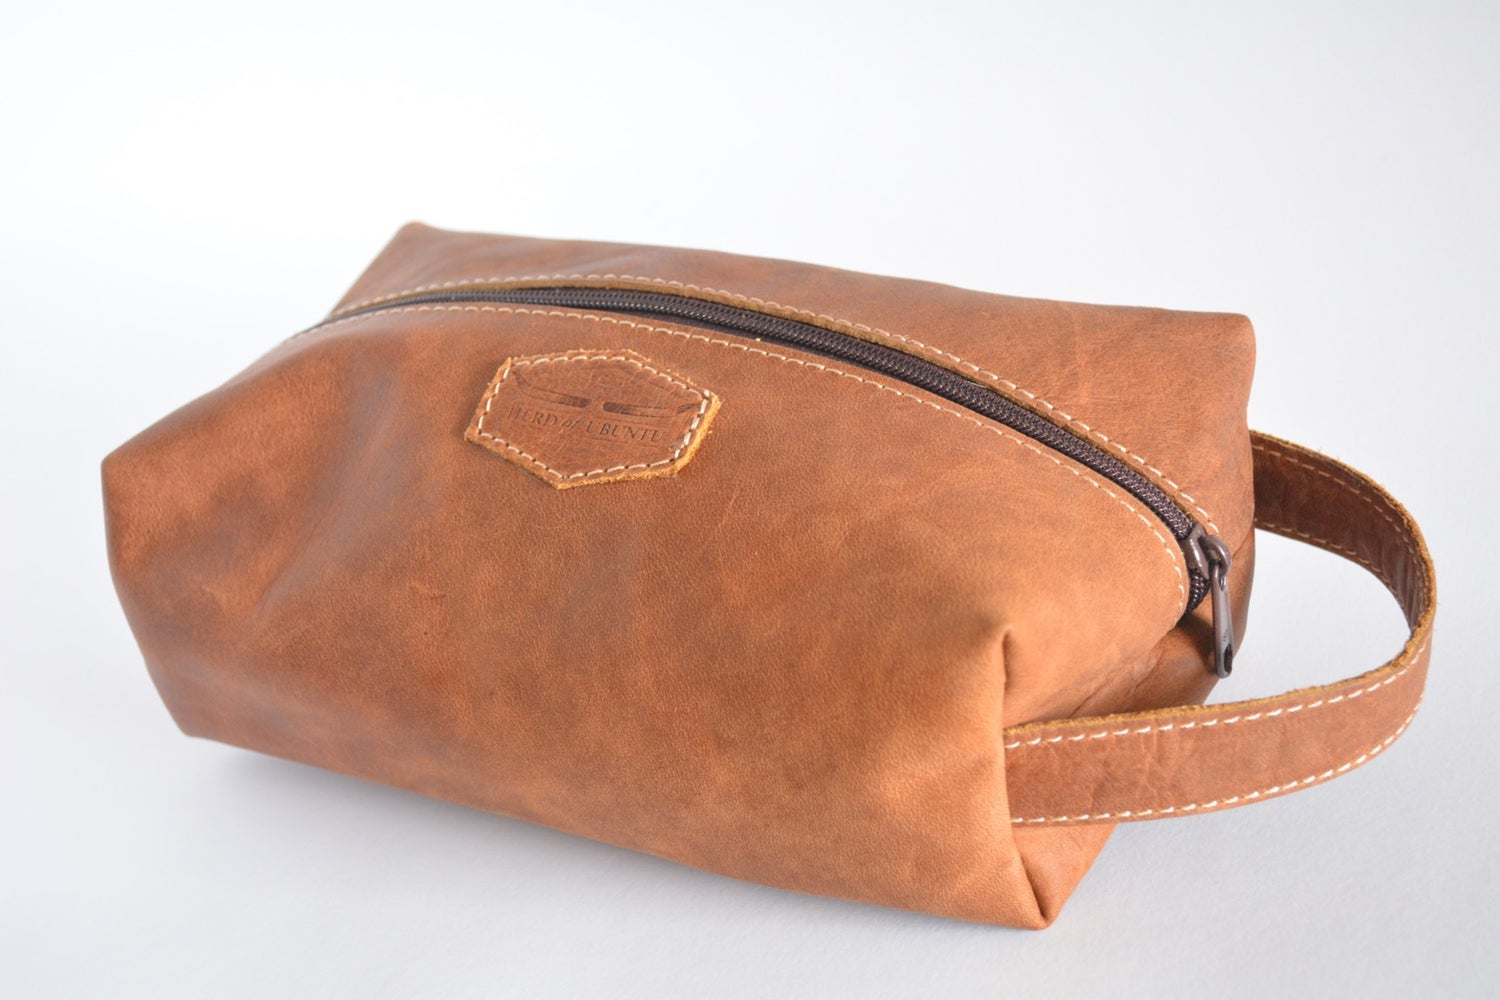 Image of 'Durban' Toiletry Bag